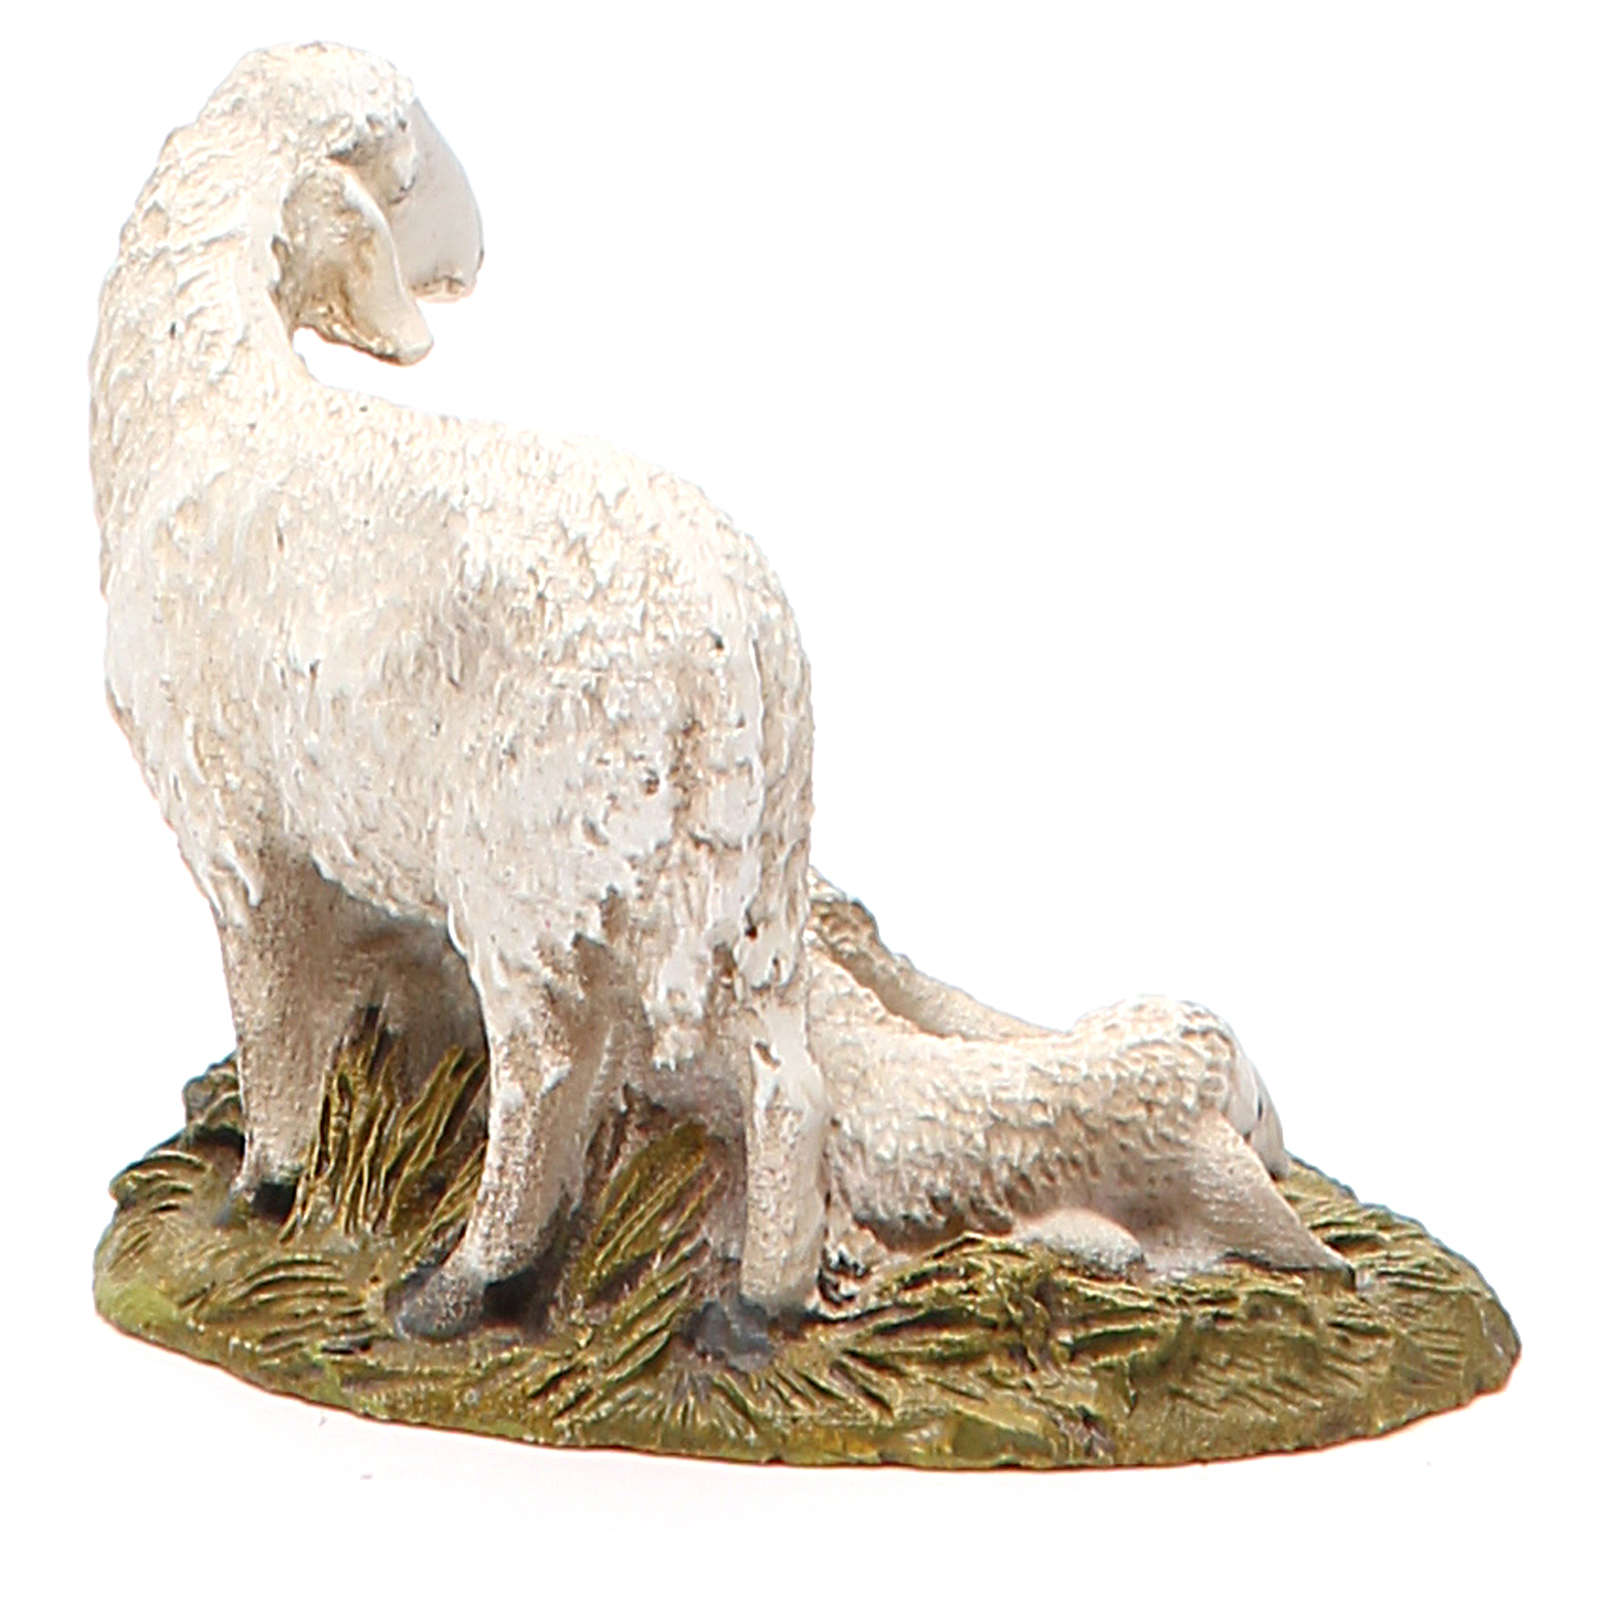 Flock of 2 sheep in painted resin, 10cm Martino Landi Nativity 3